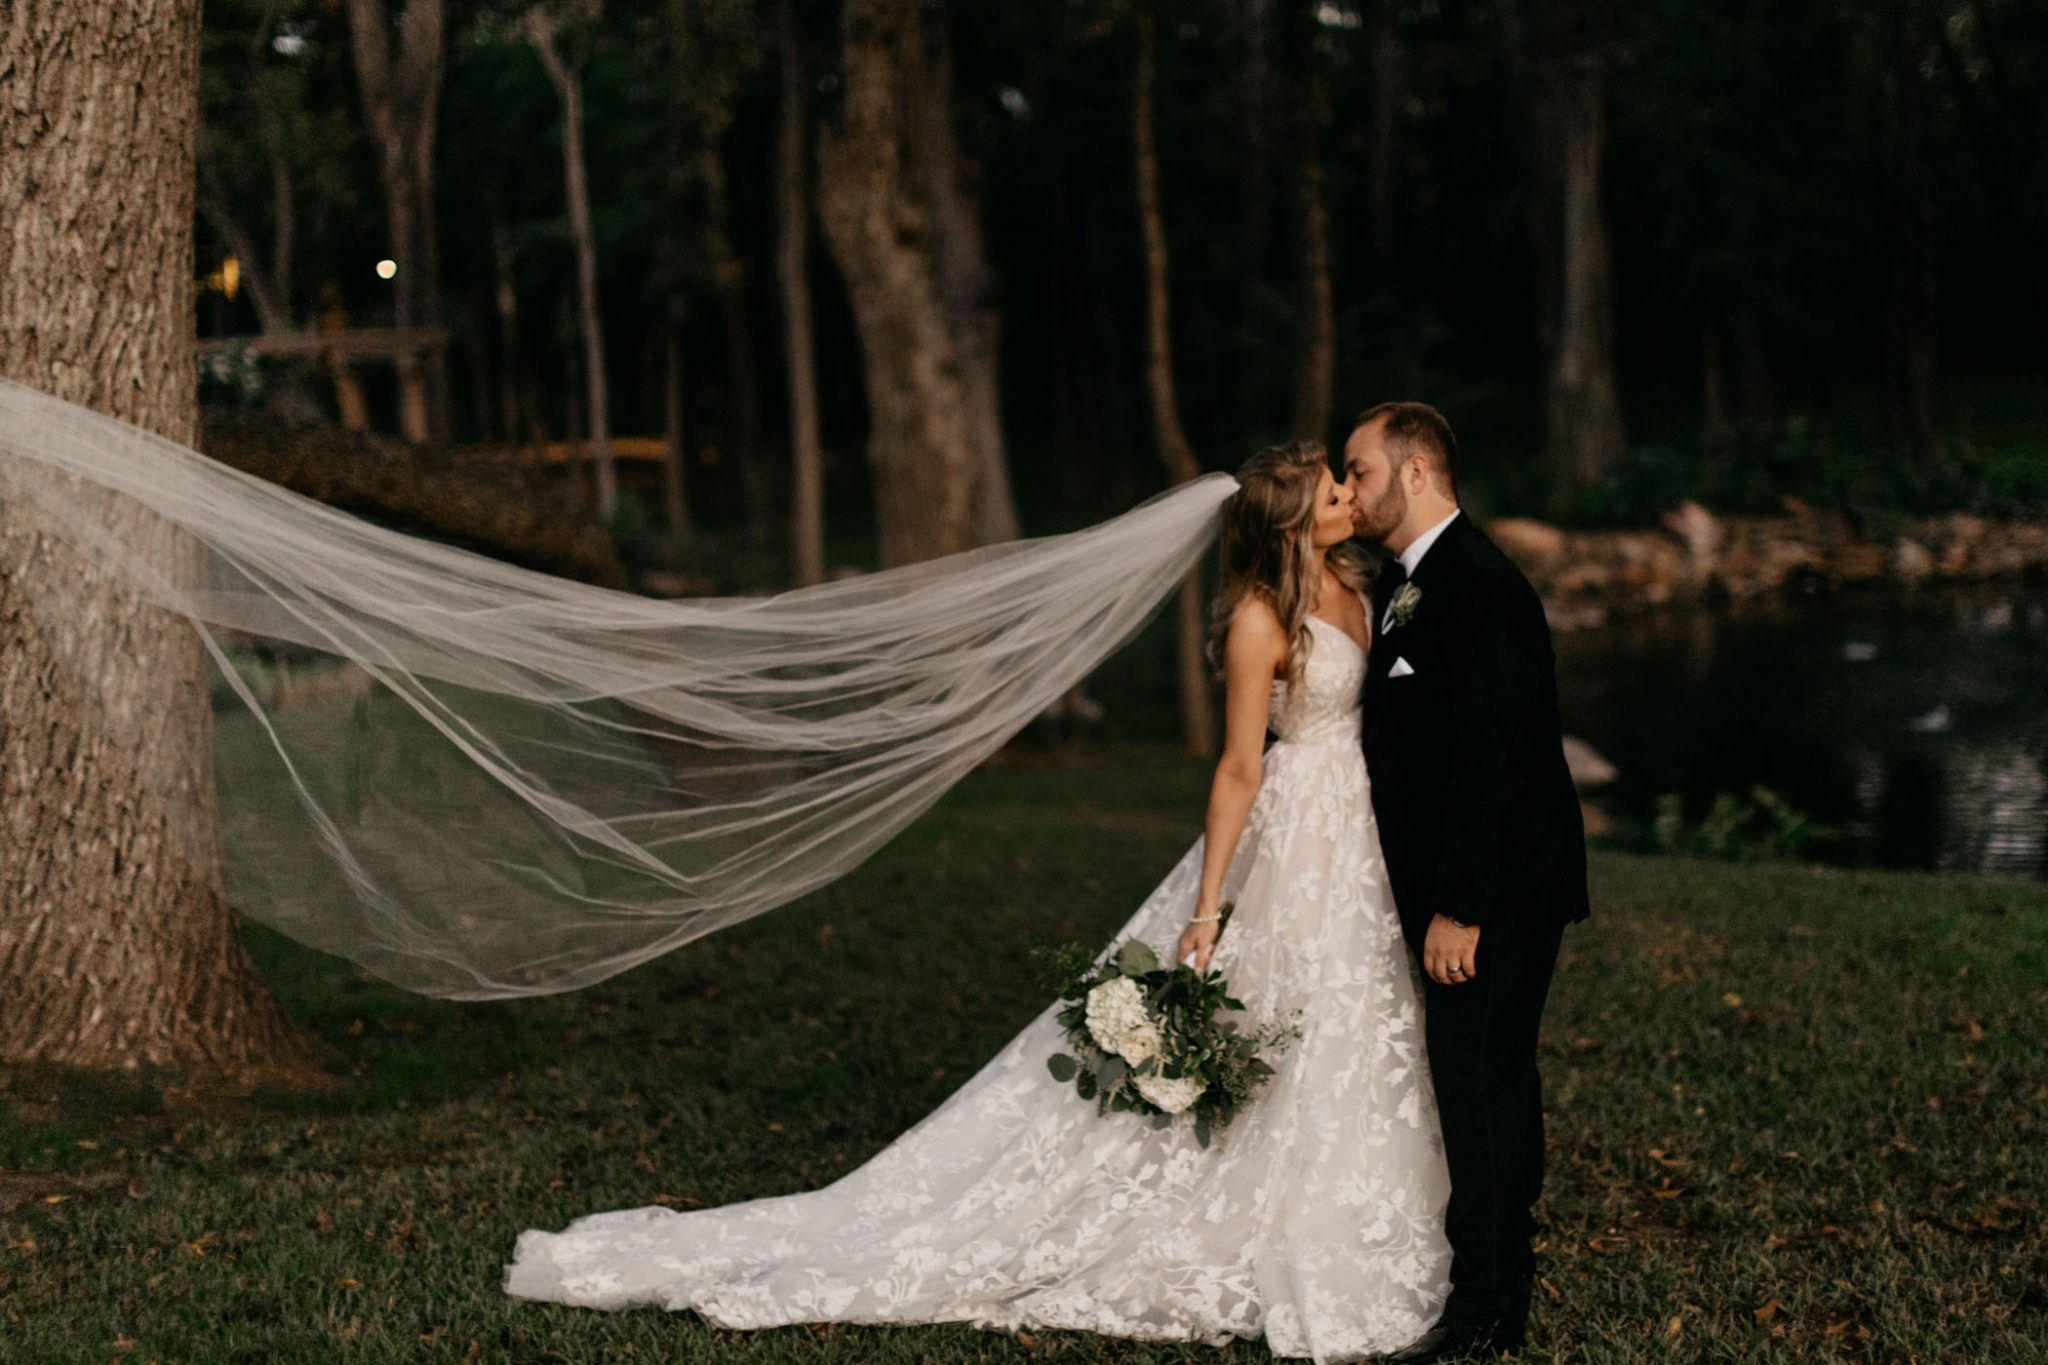 brides wedding veil blowing in the wind as she kisses her new husband